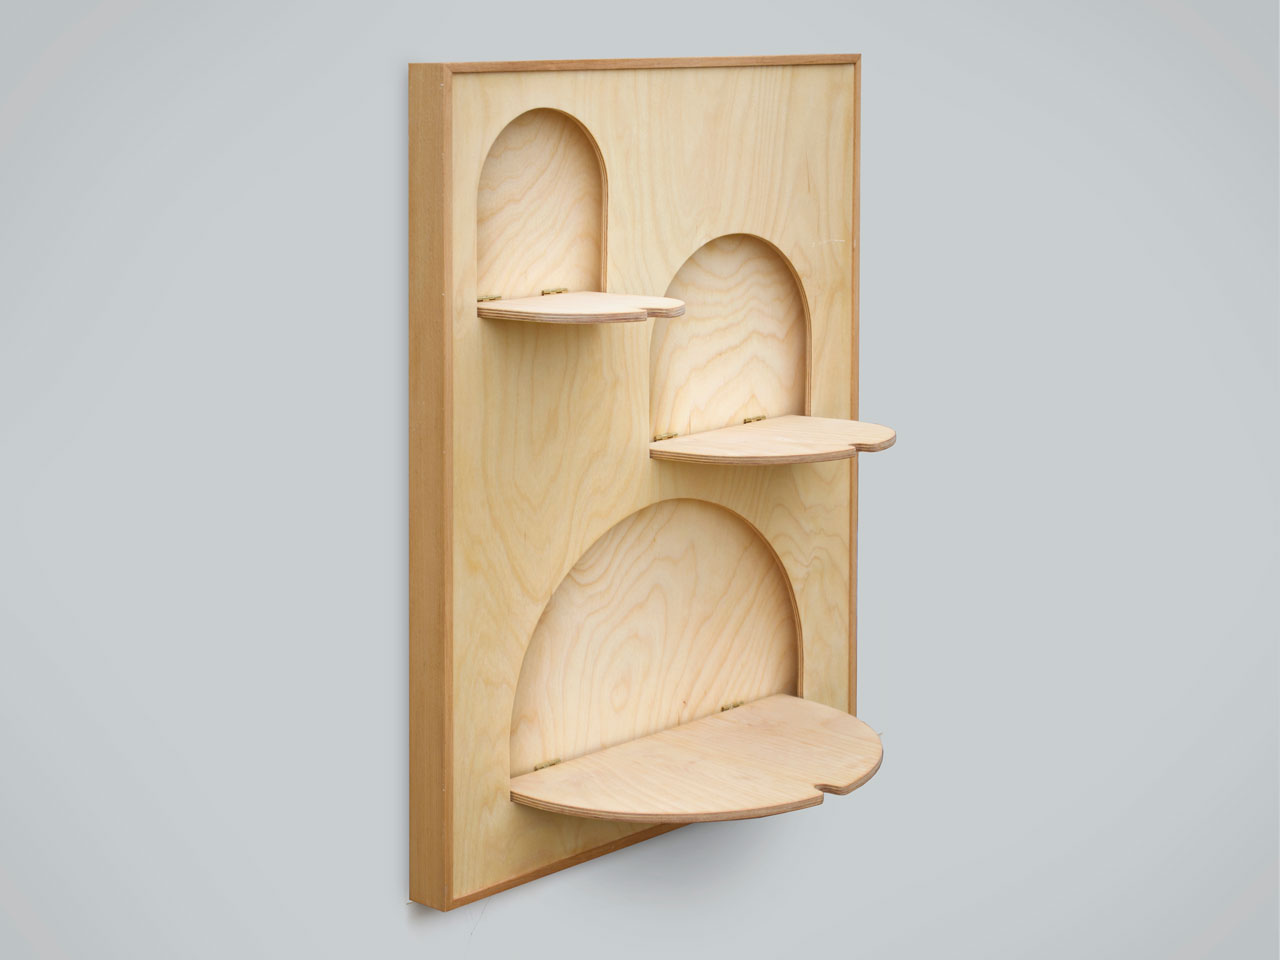 Wallmonds-Shelves-Goncalo-Campos-4